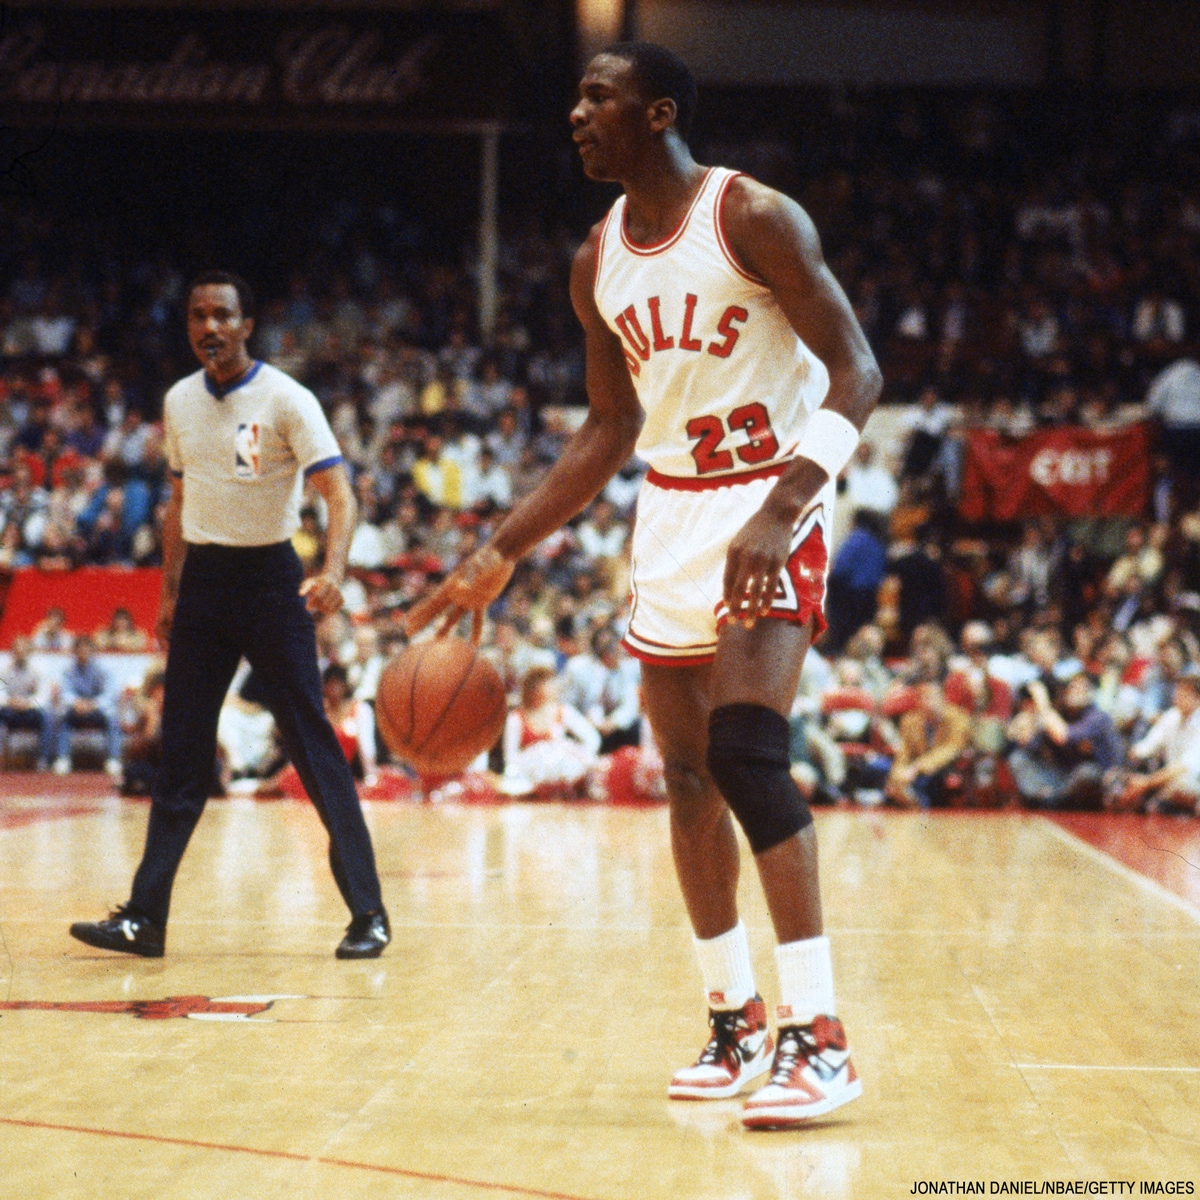 Michael Jordan's debut, 30 years ago | Chicago Bulls